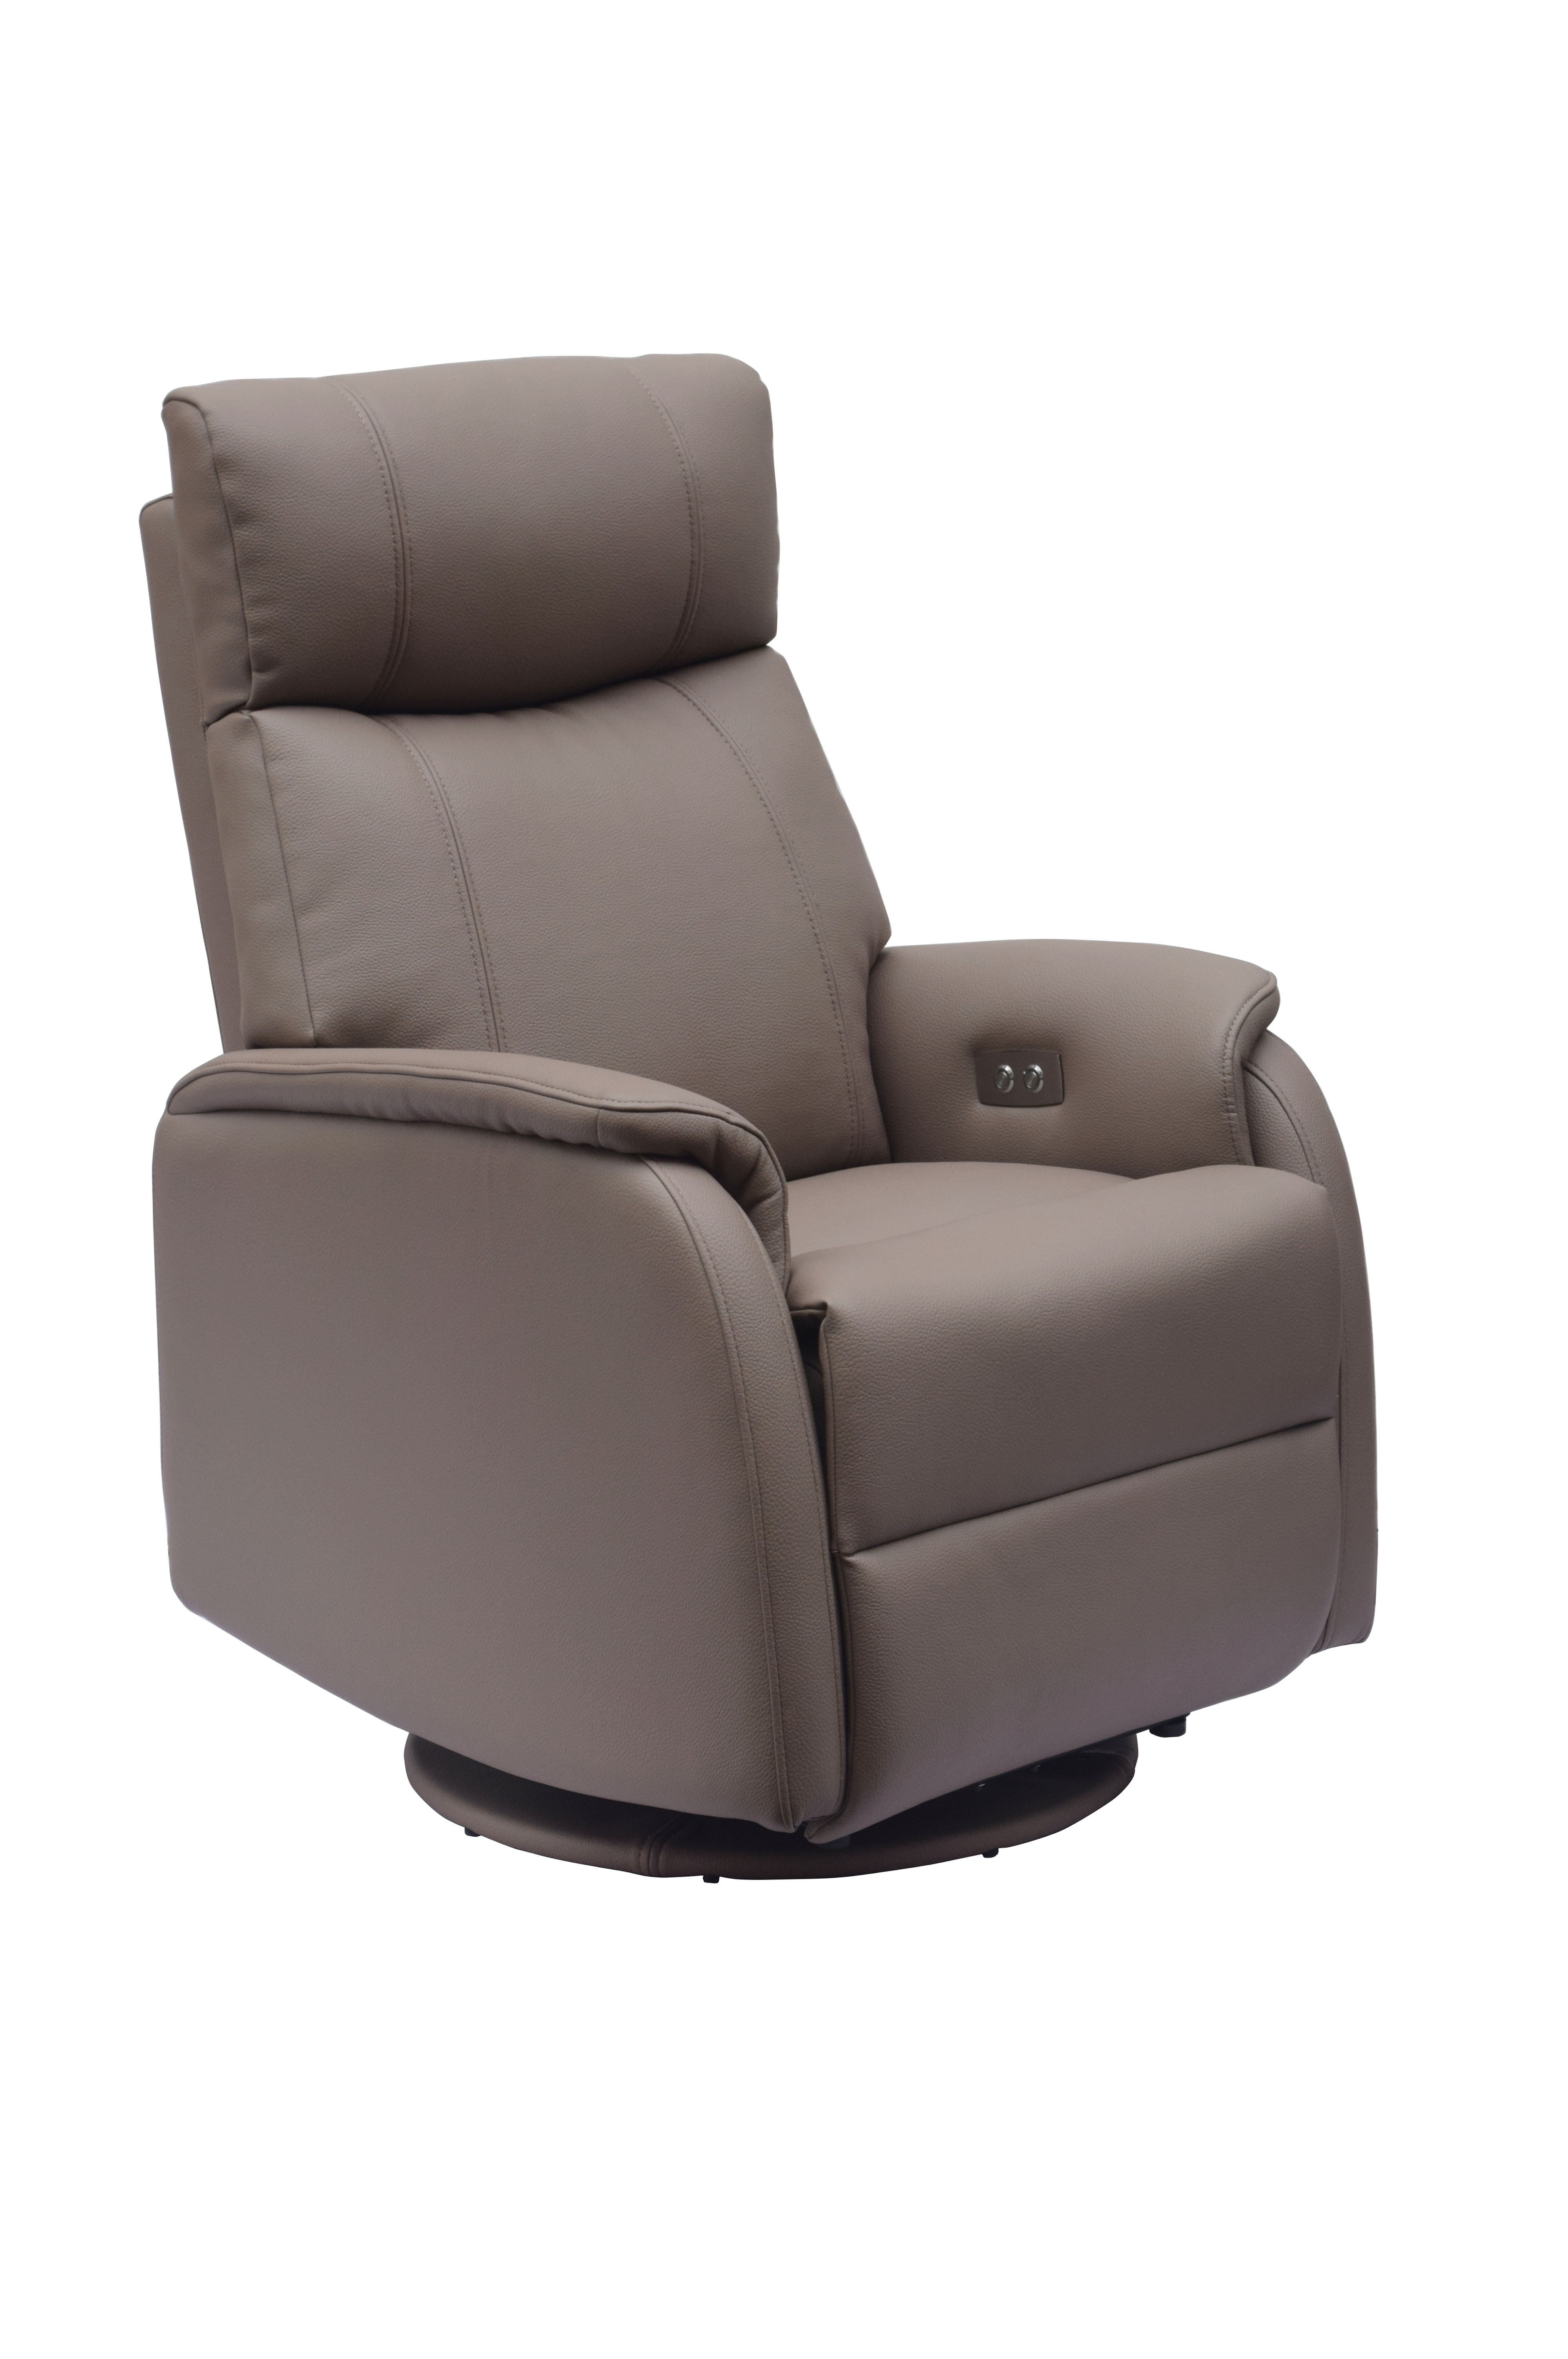 grey leather recliner chair uk as seen on tv cover electric small